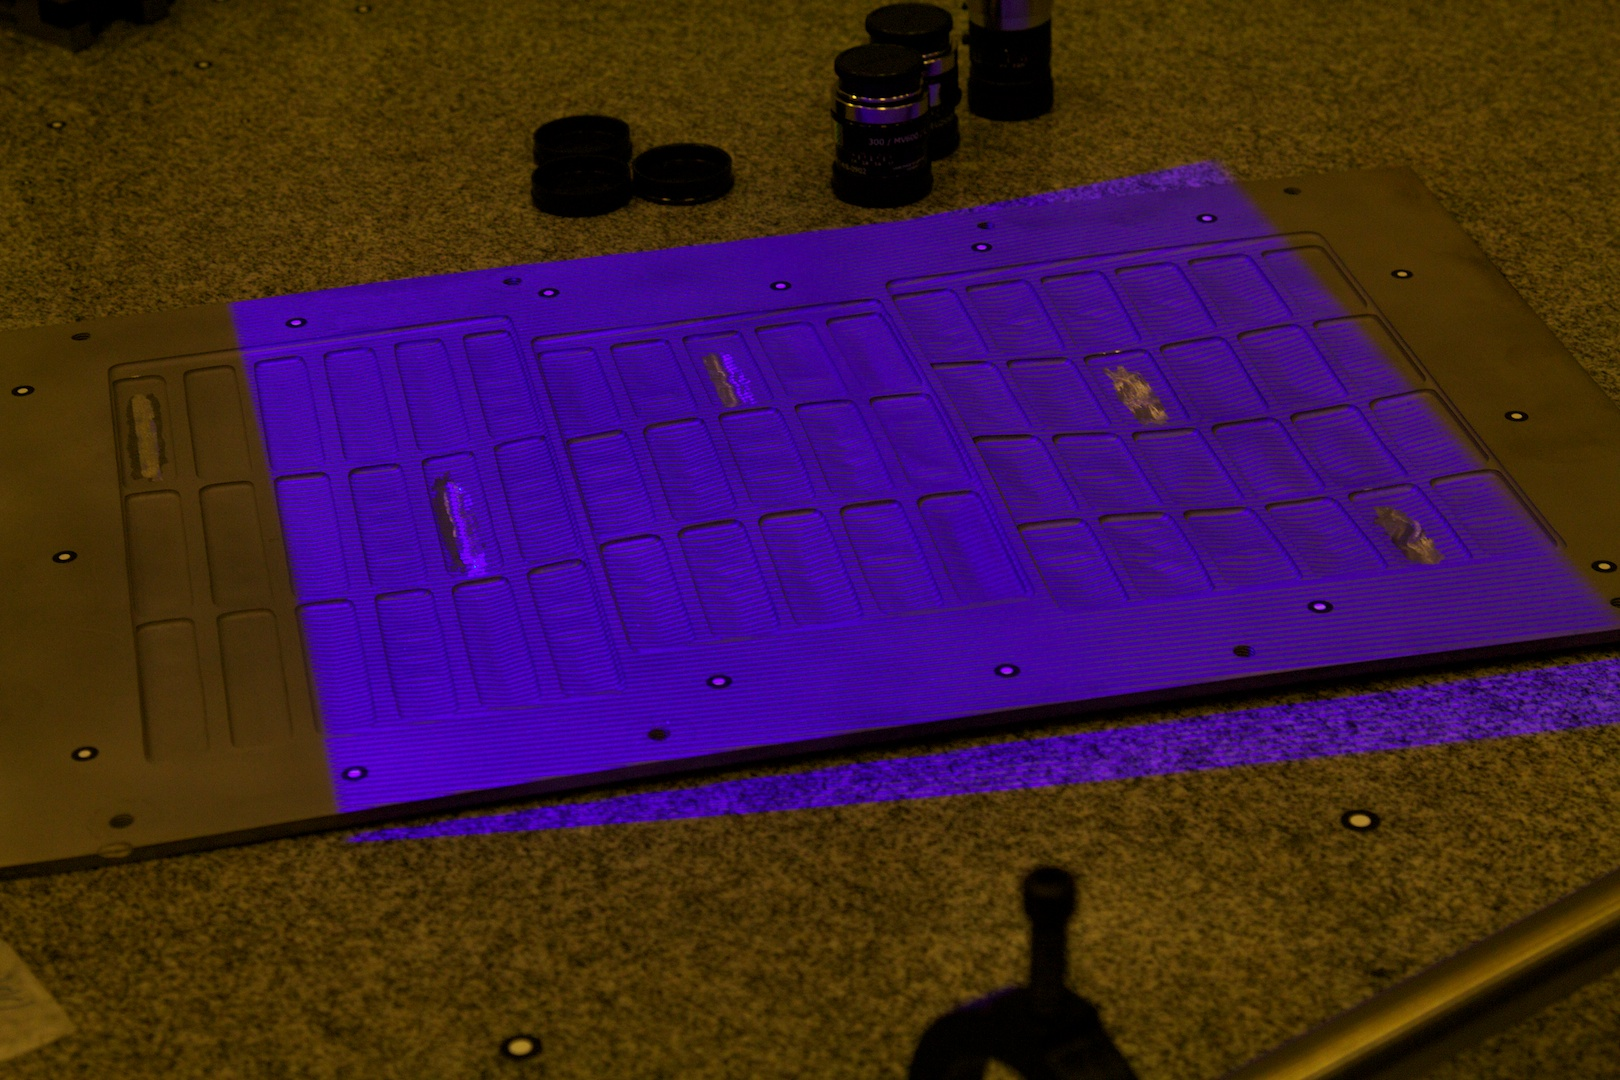 Scanning a small object with the structured light scanner. The alternating horizontal bars in the purple projection are used by the cameras to detect surface detail. Note positional decals around the object's perimeter.